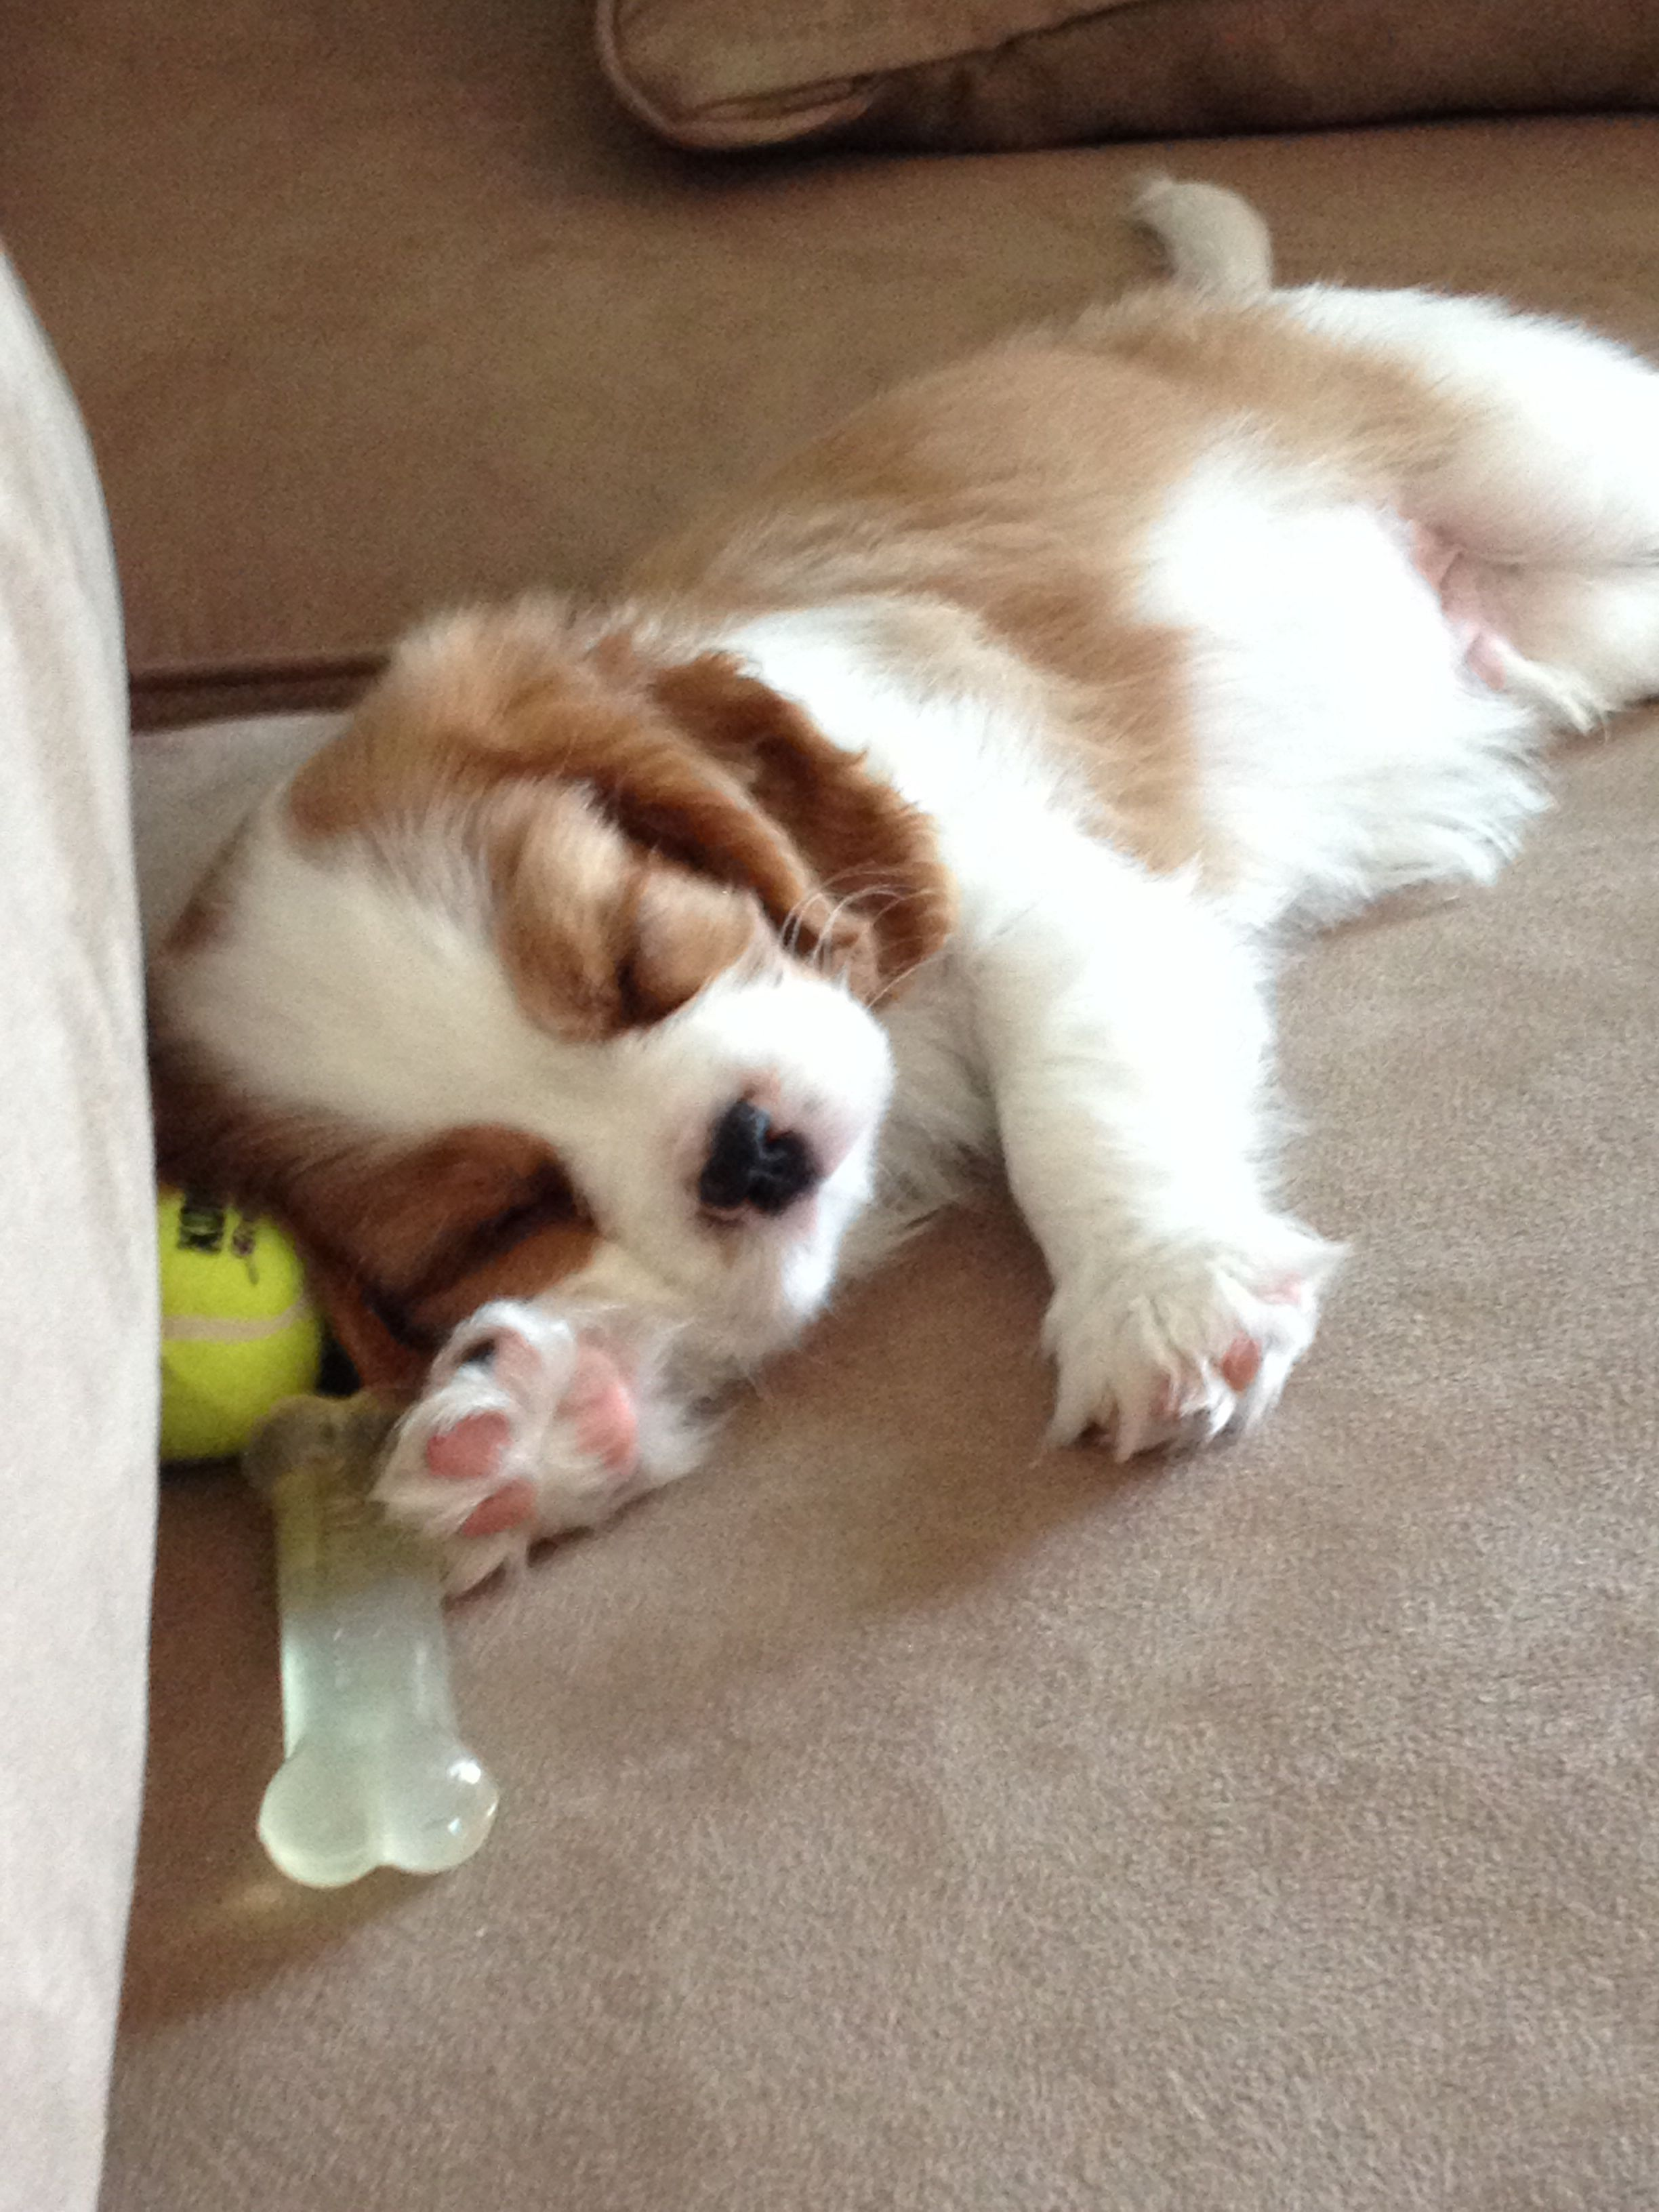 Cavalier king charles spaniel graceful and affectionate sleeping cavalier king charles spaniel graceful and affectionate sleeping puppies charles spaniel and king charles nvjuhfo Choice Image